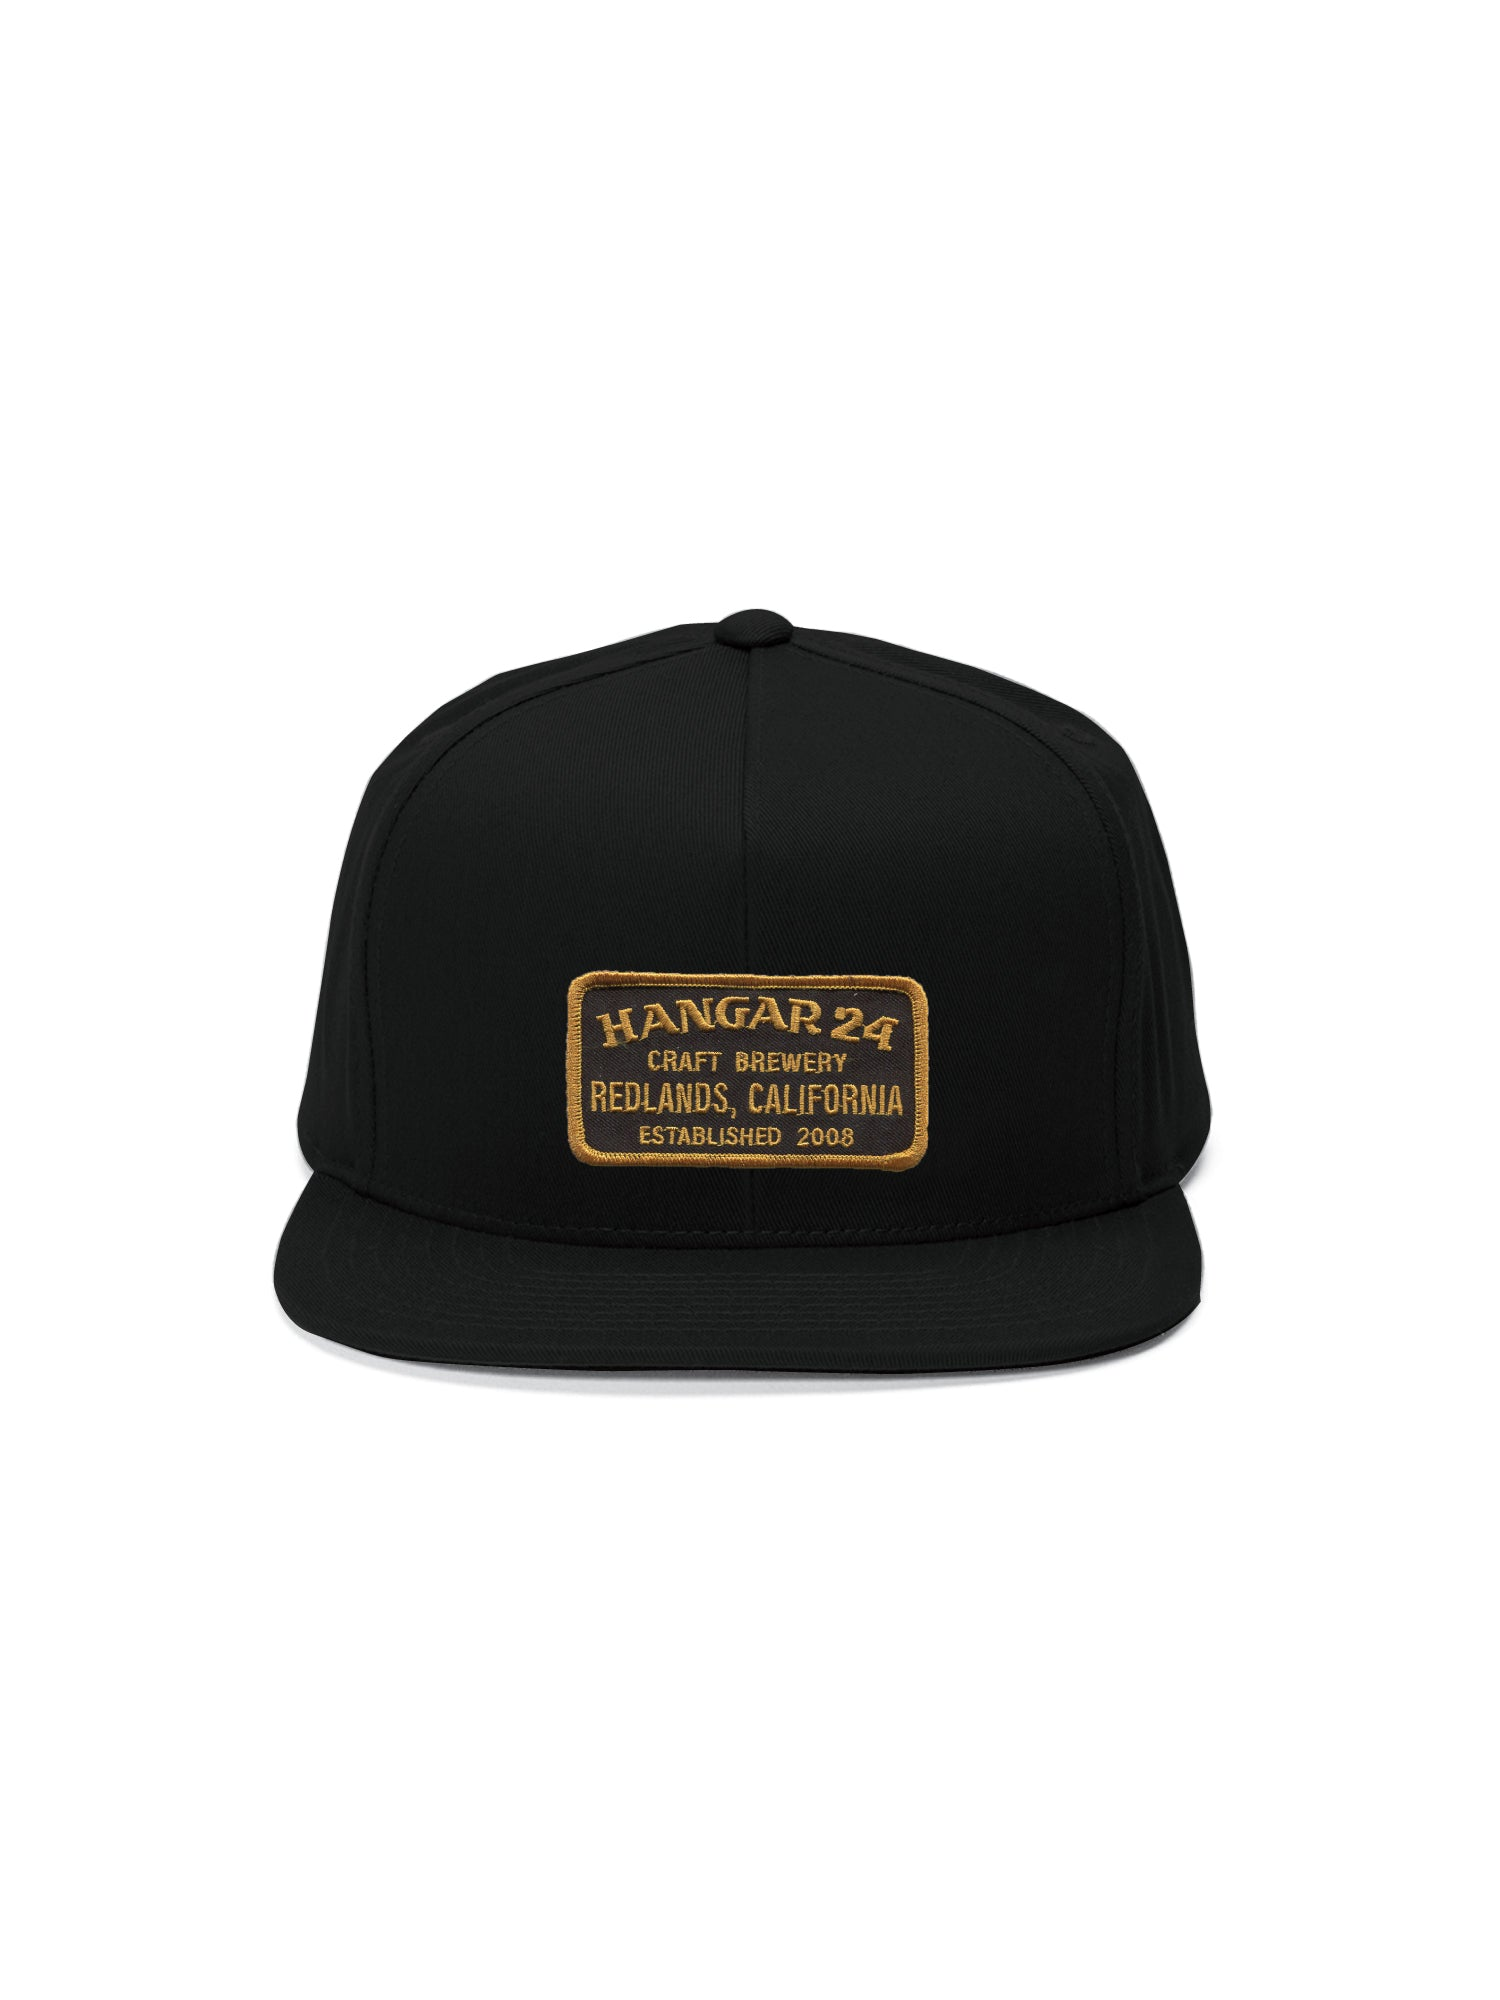 HANGAR 24 REDLANDS HAT- BLACK